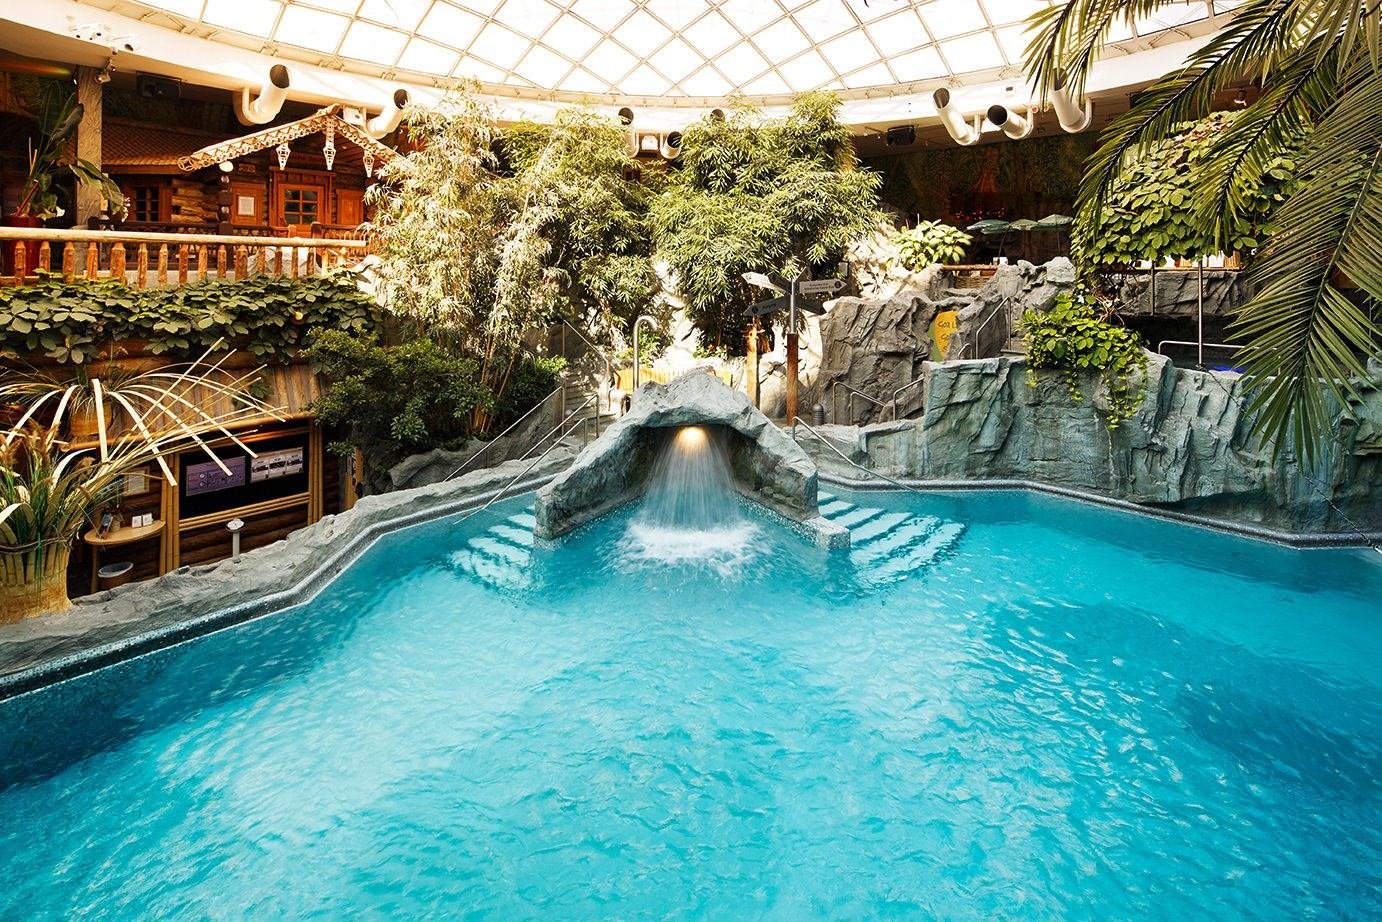 Indoor Image of Resort swimming pool with clean water and glass top roof for day lighting